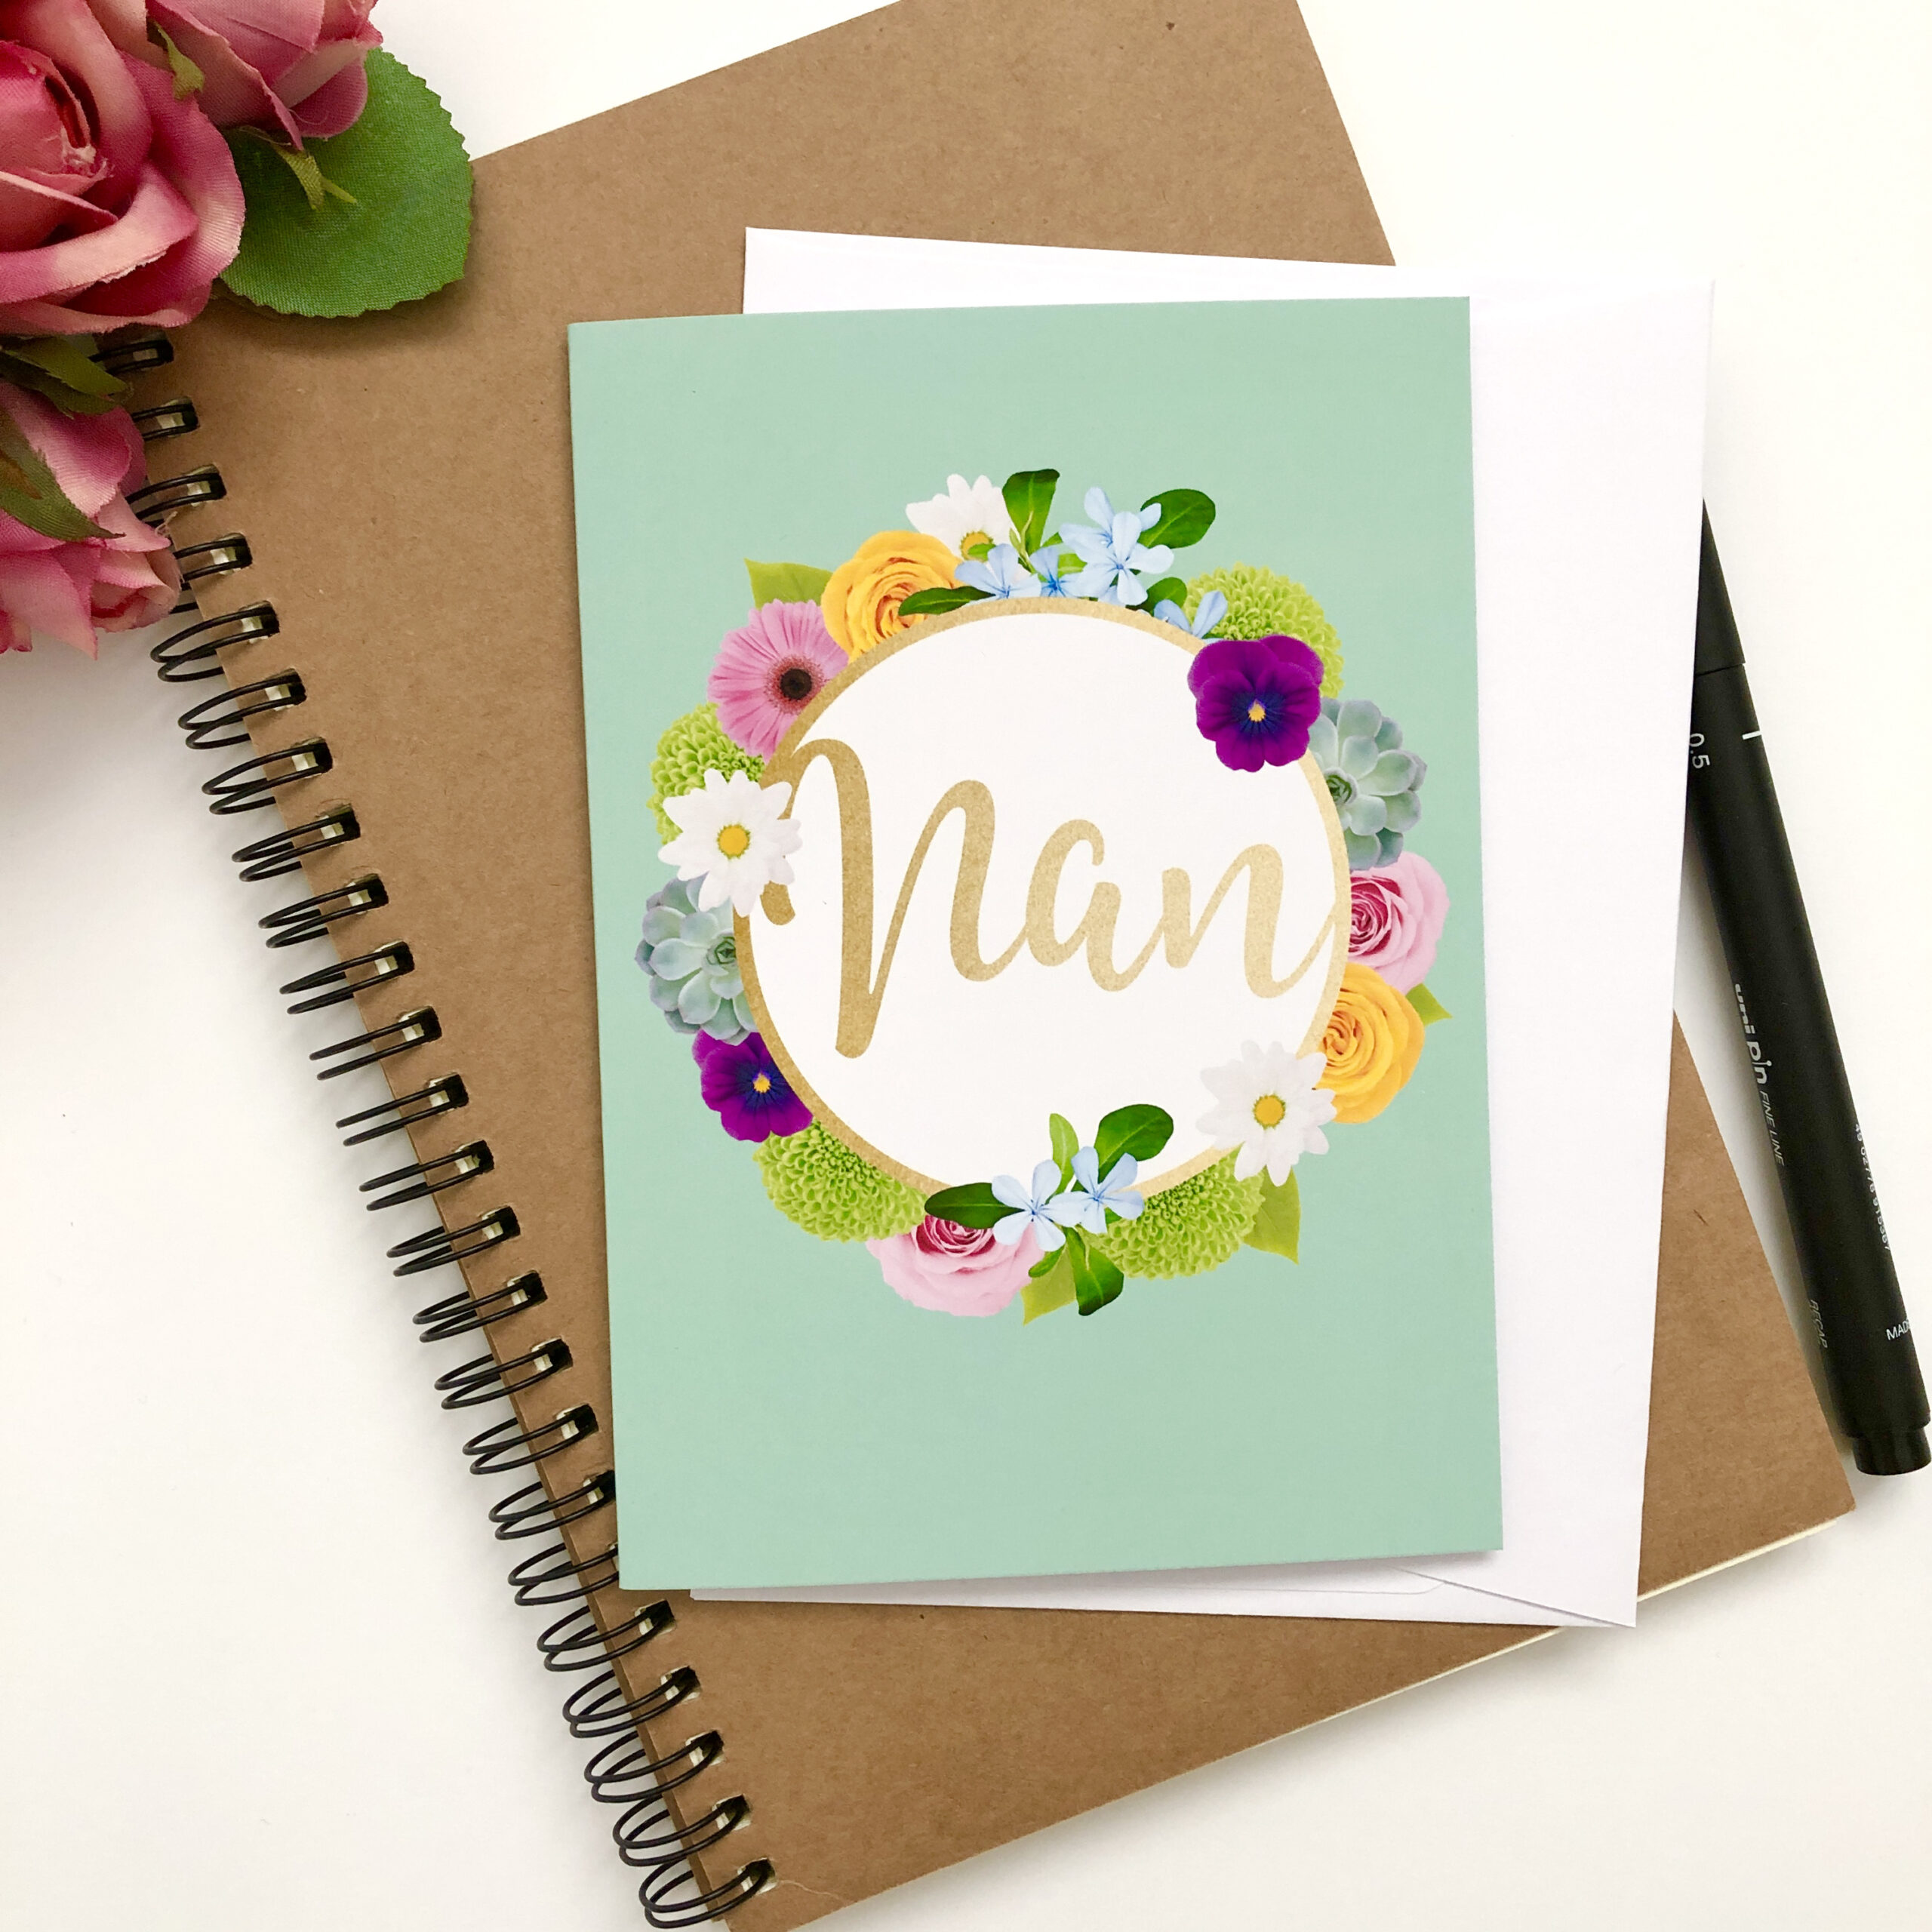 Greetings card for Nan with colourful floral wreath and a lovely green background